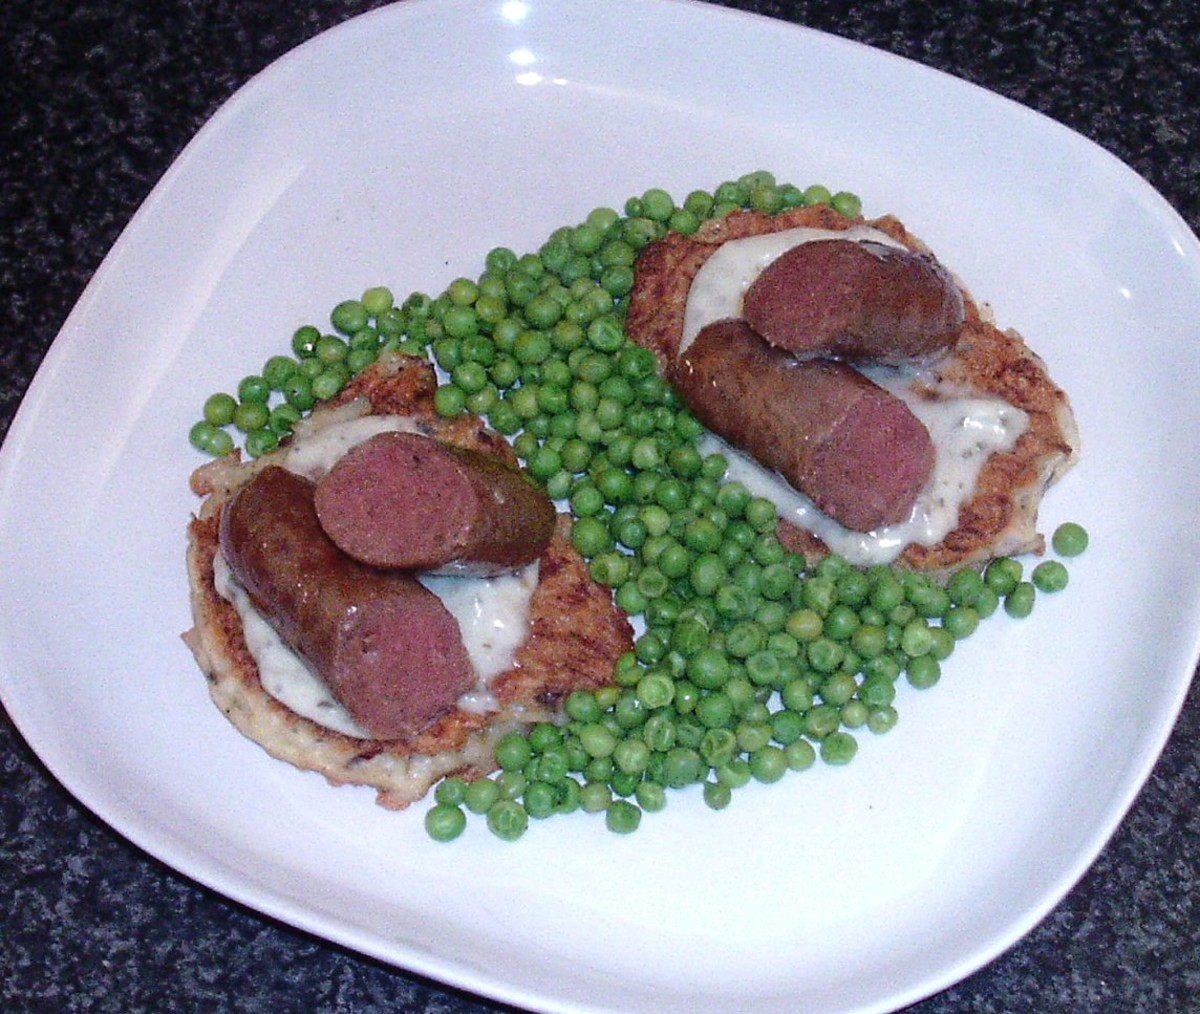 Venison Sausages Served on Potato Cakes Spread With Horseradish Sauce